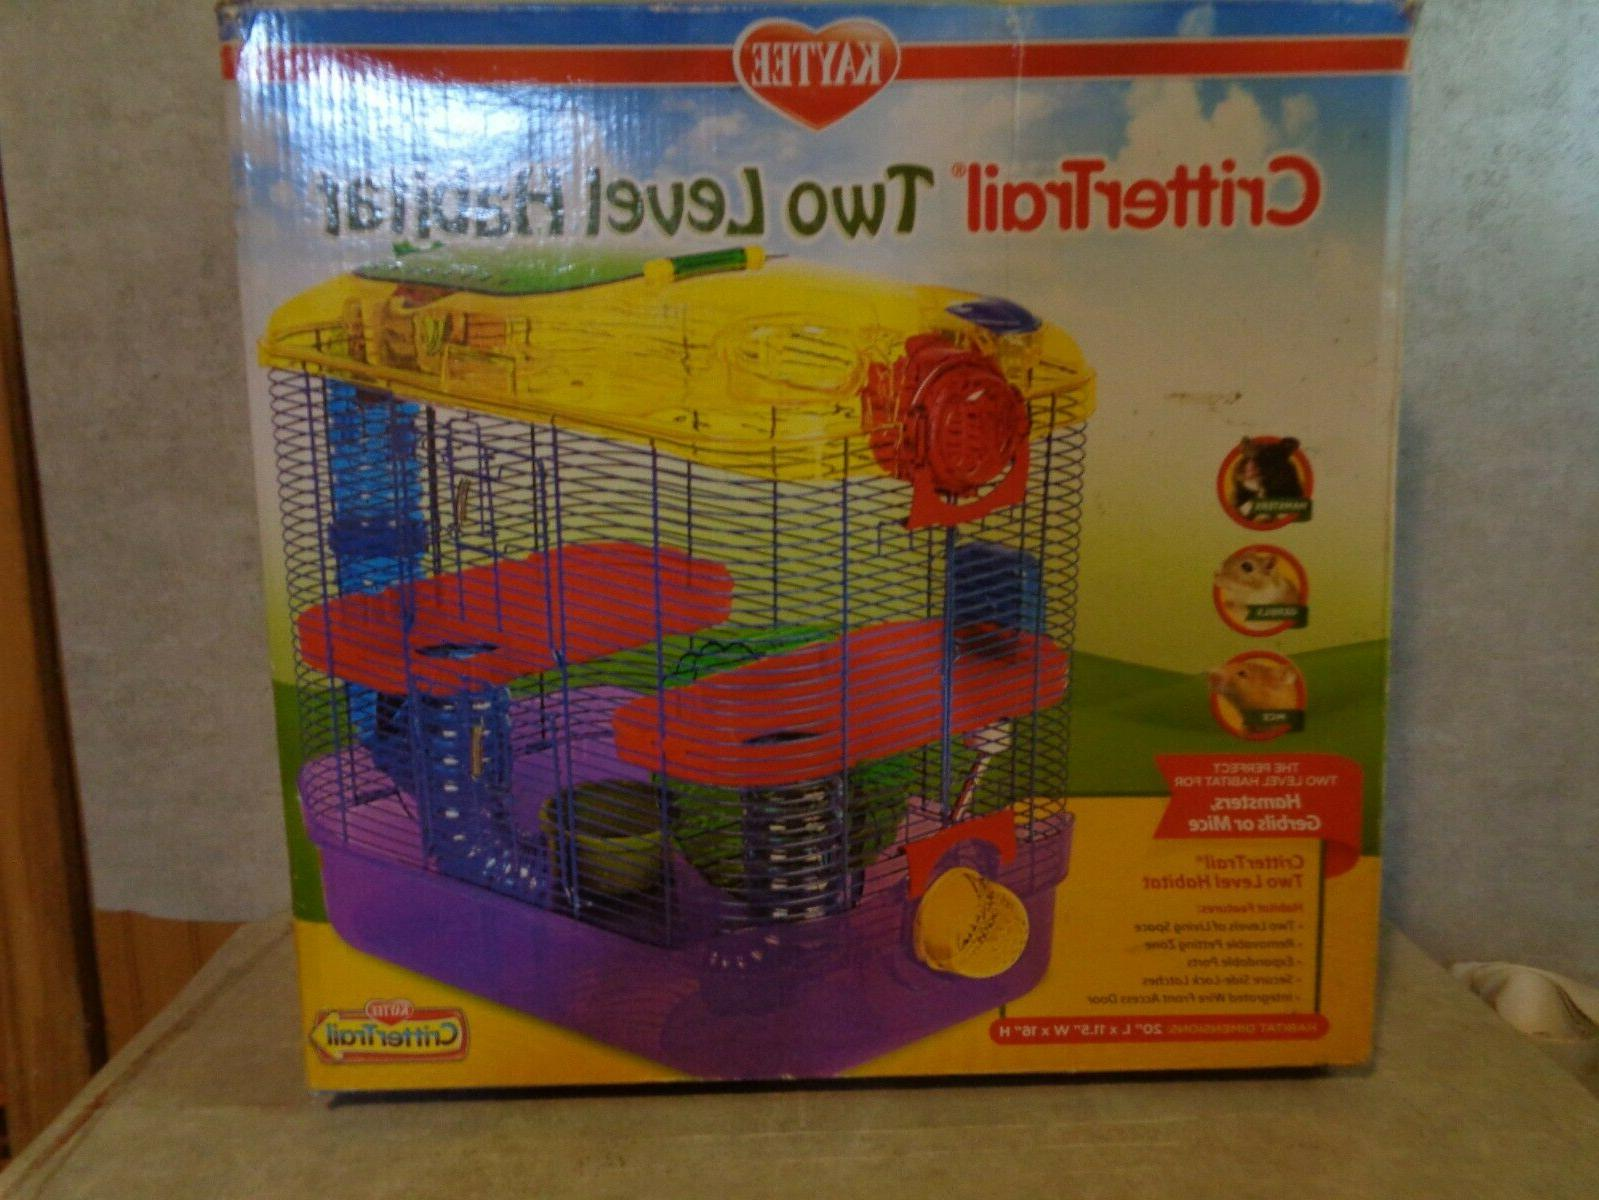 crittertrail two level habitat 20 inches x